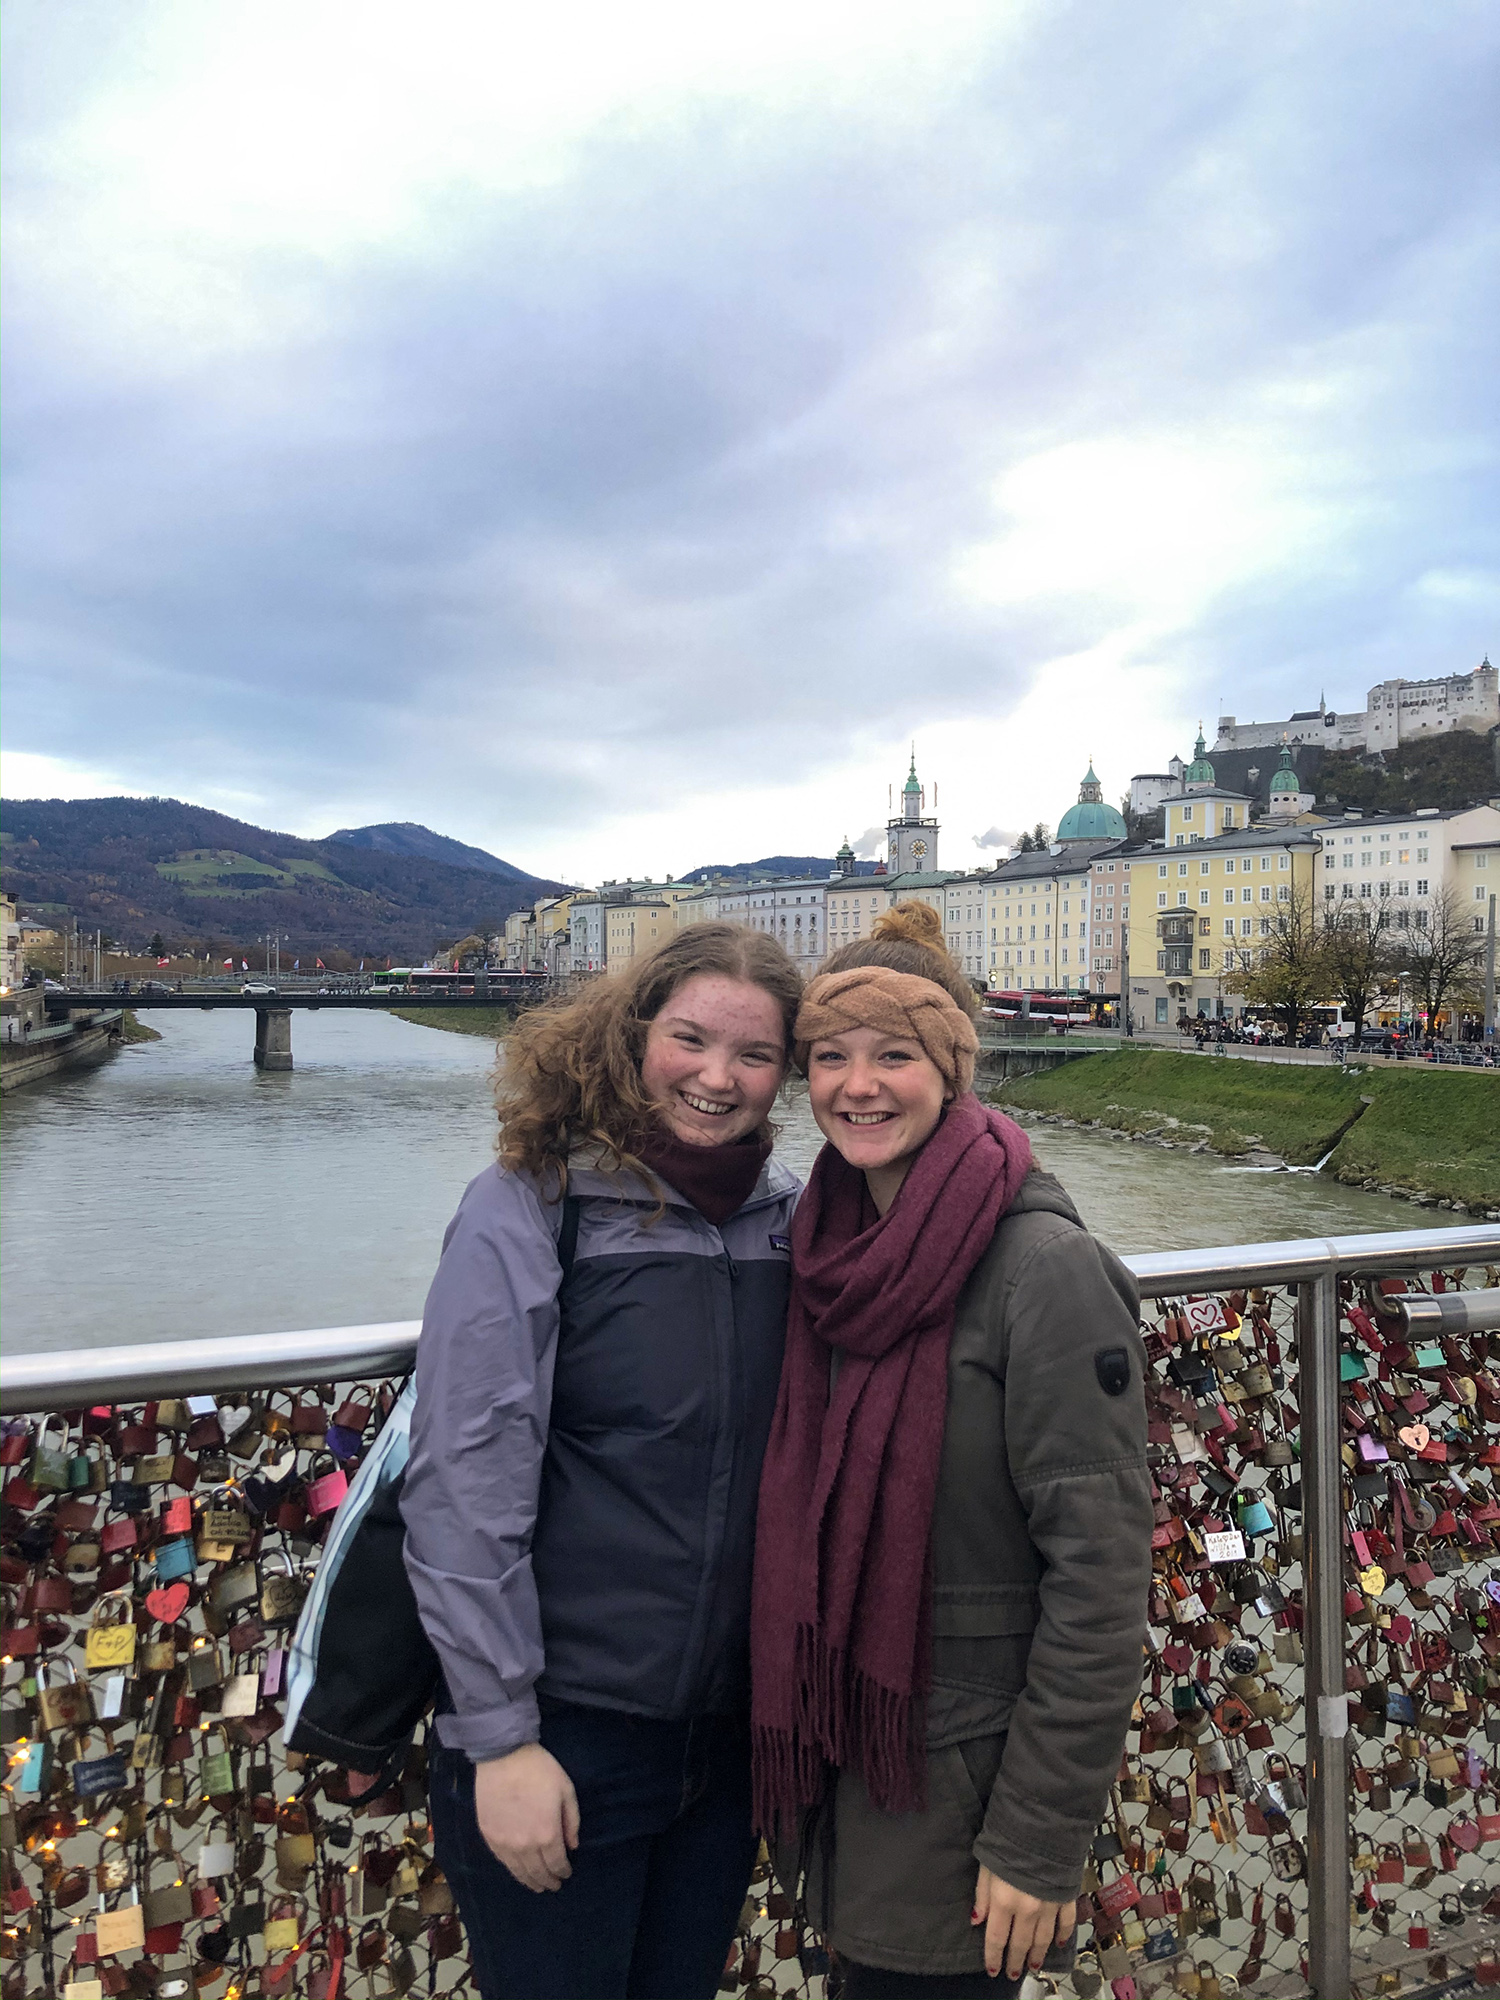 Ceiledh and her friend posing on a bridge full of combination locks.